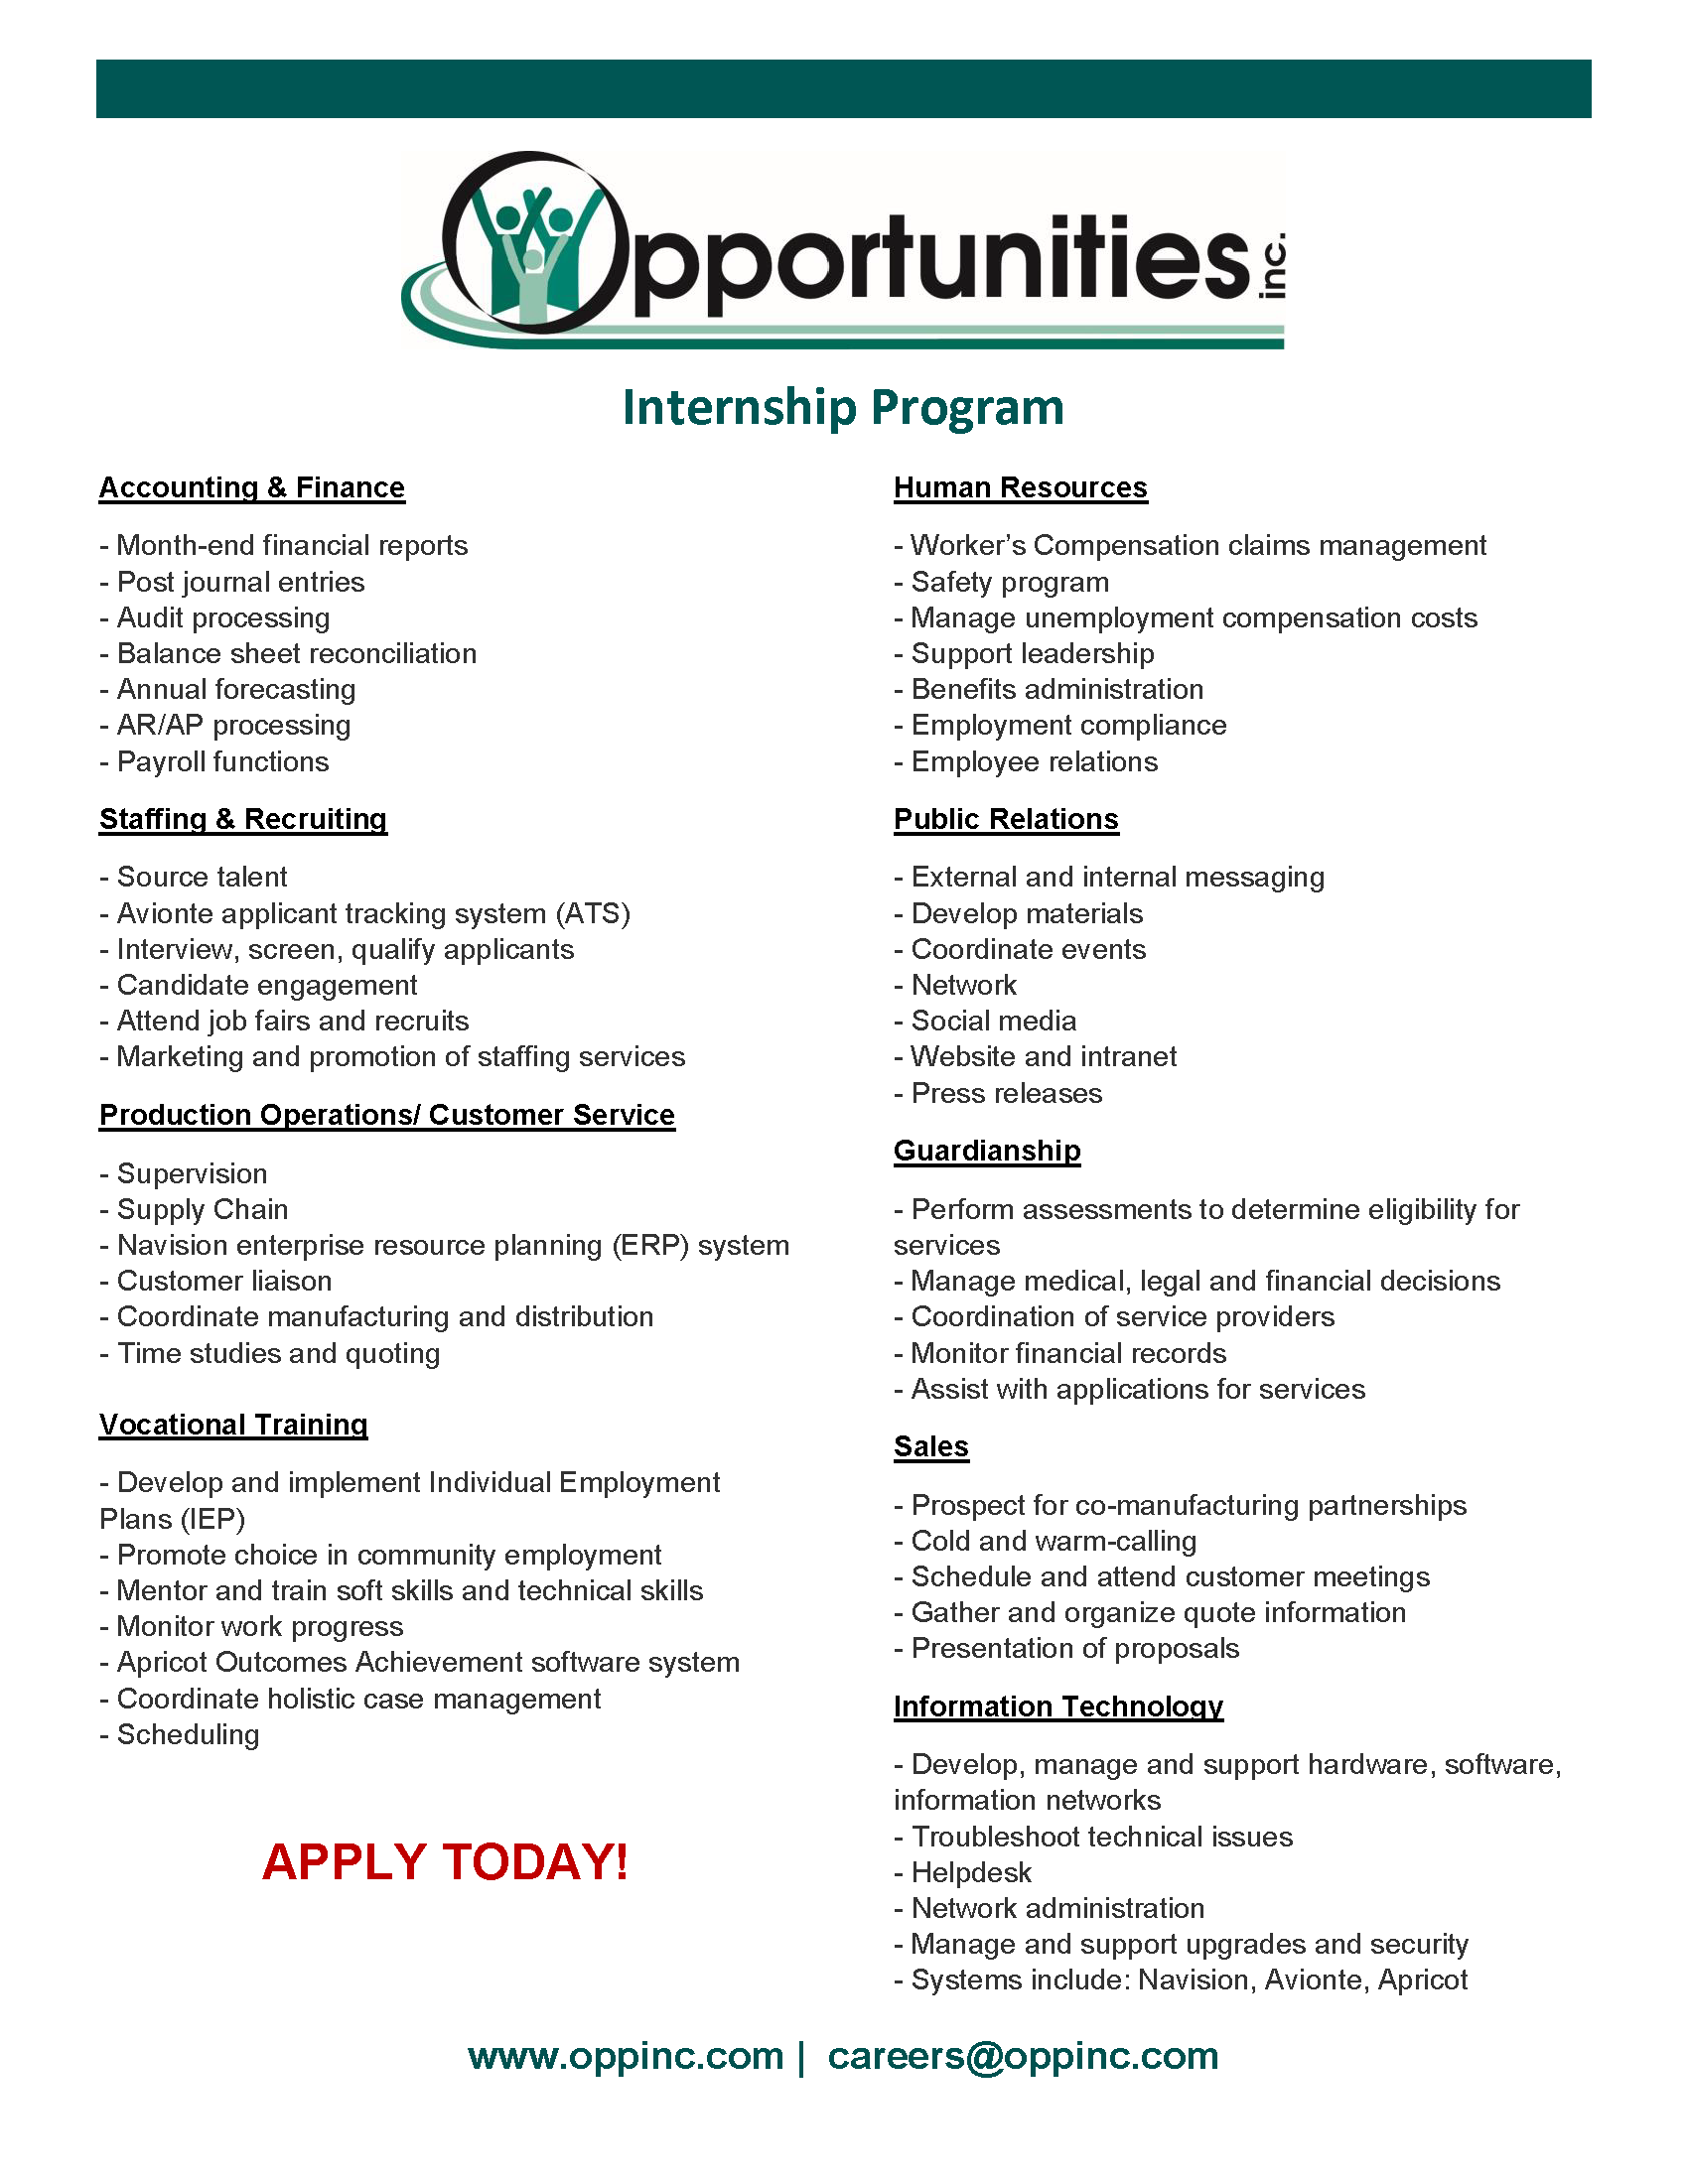 Opportunities, Inc WI – Manufacturing Services, Training and